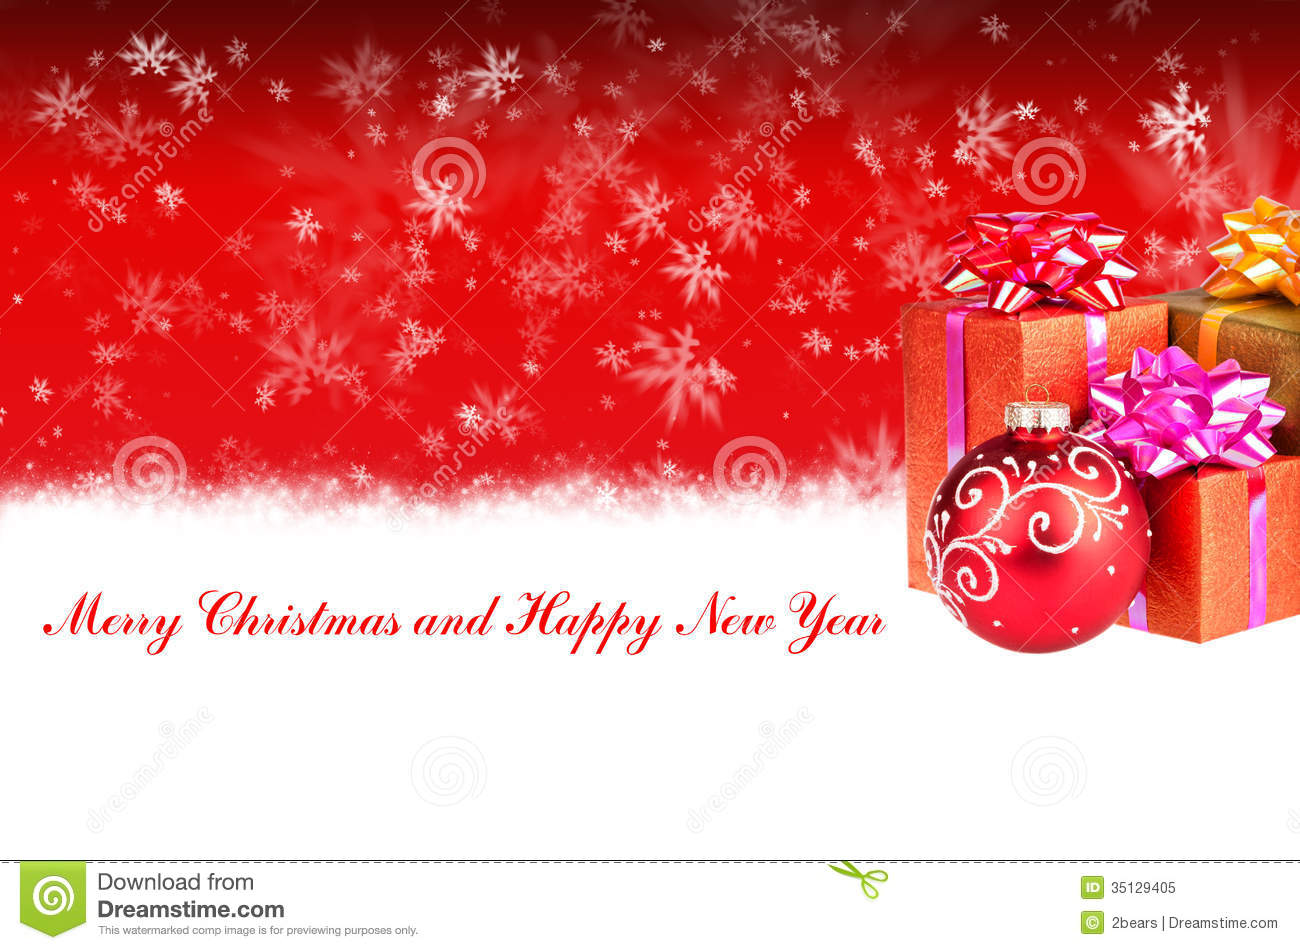 Merry christmas and happy new year red background with gifts stock merry christmas and happy new year red background with gifts negle Choice Image